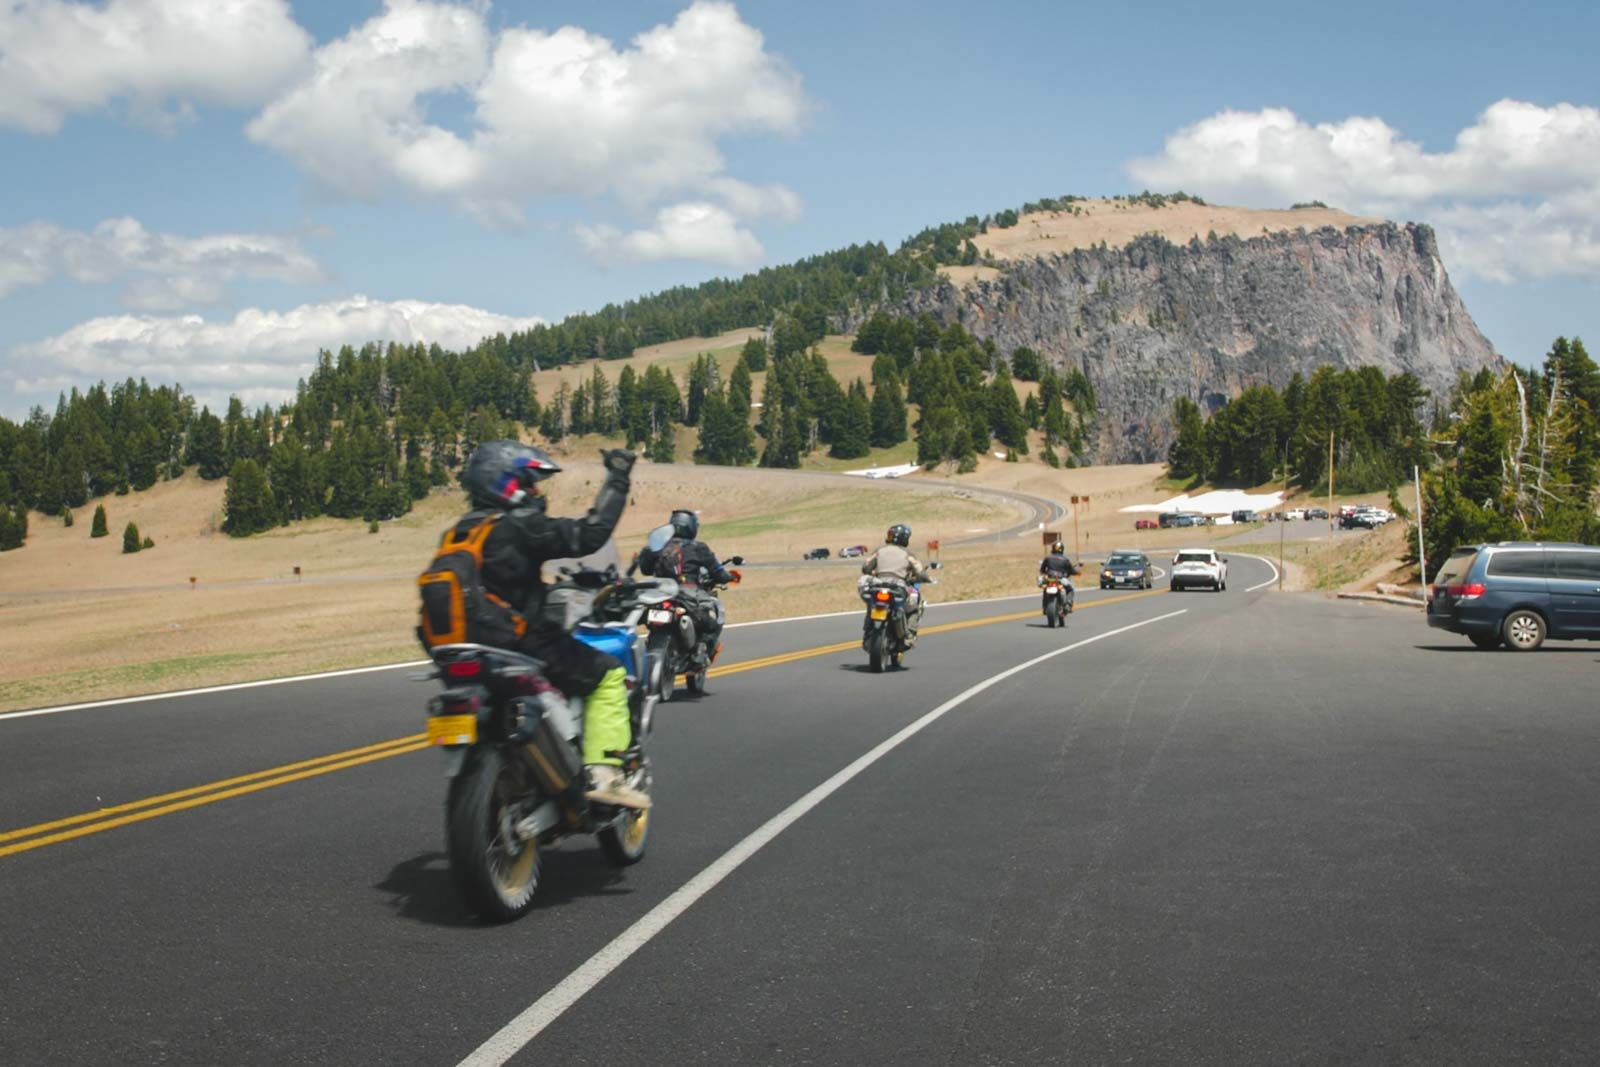 adv-rider-sends-the-shaka-in-crater-lake-national-park-on-adventure-motorcycle-tour-oregon